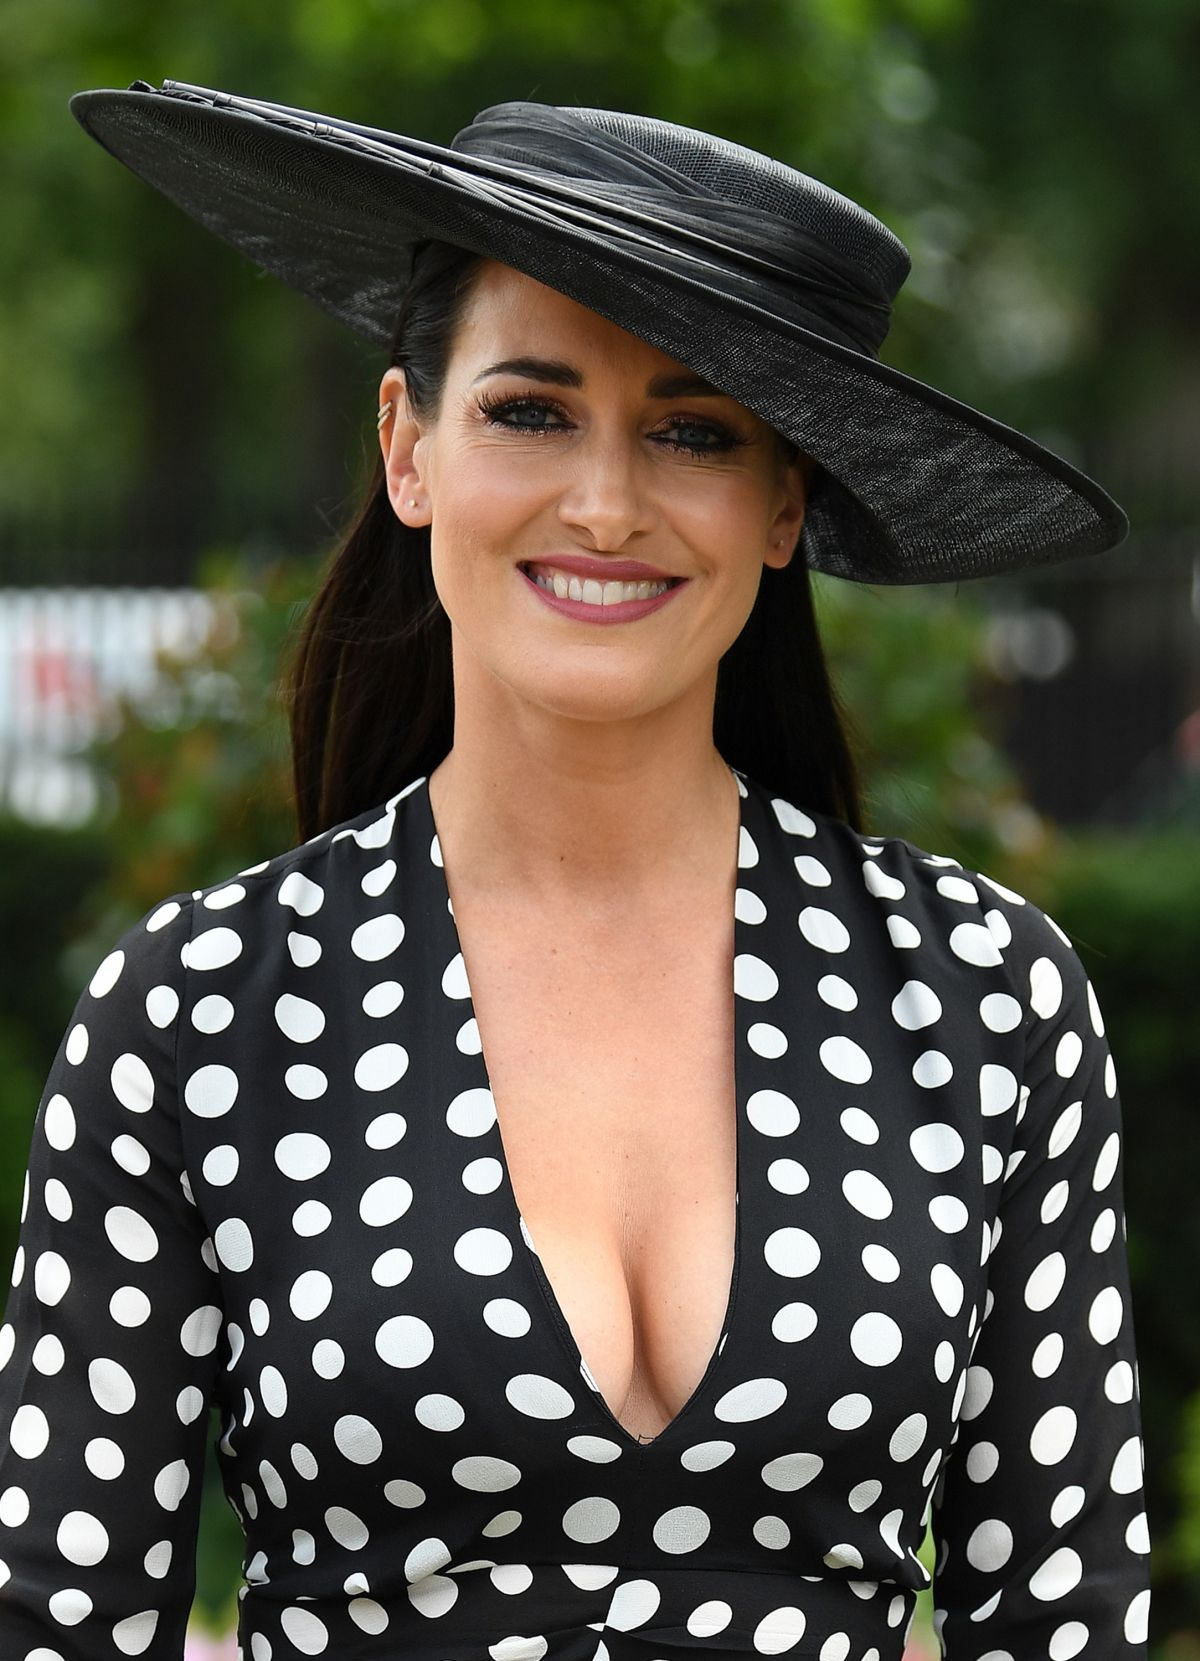 ICloud Kirsty Gallacher naked (75 photos), Pussy, Leaked, Instagram, bra 2017